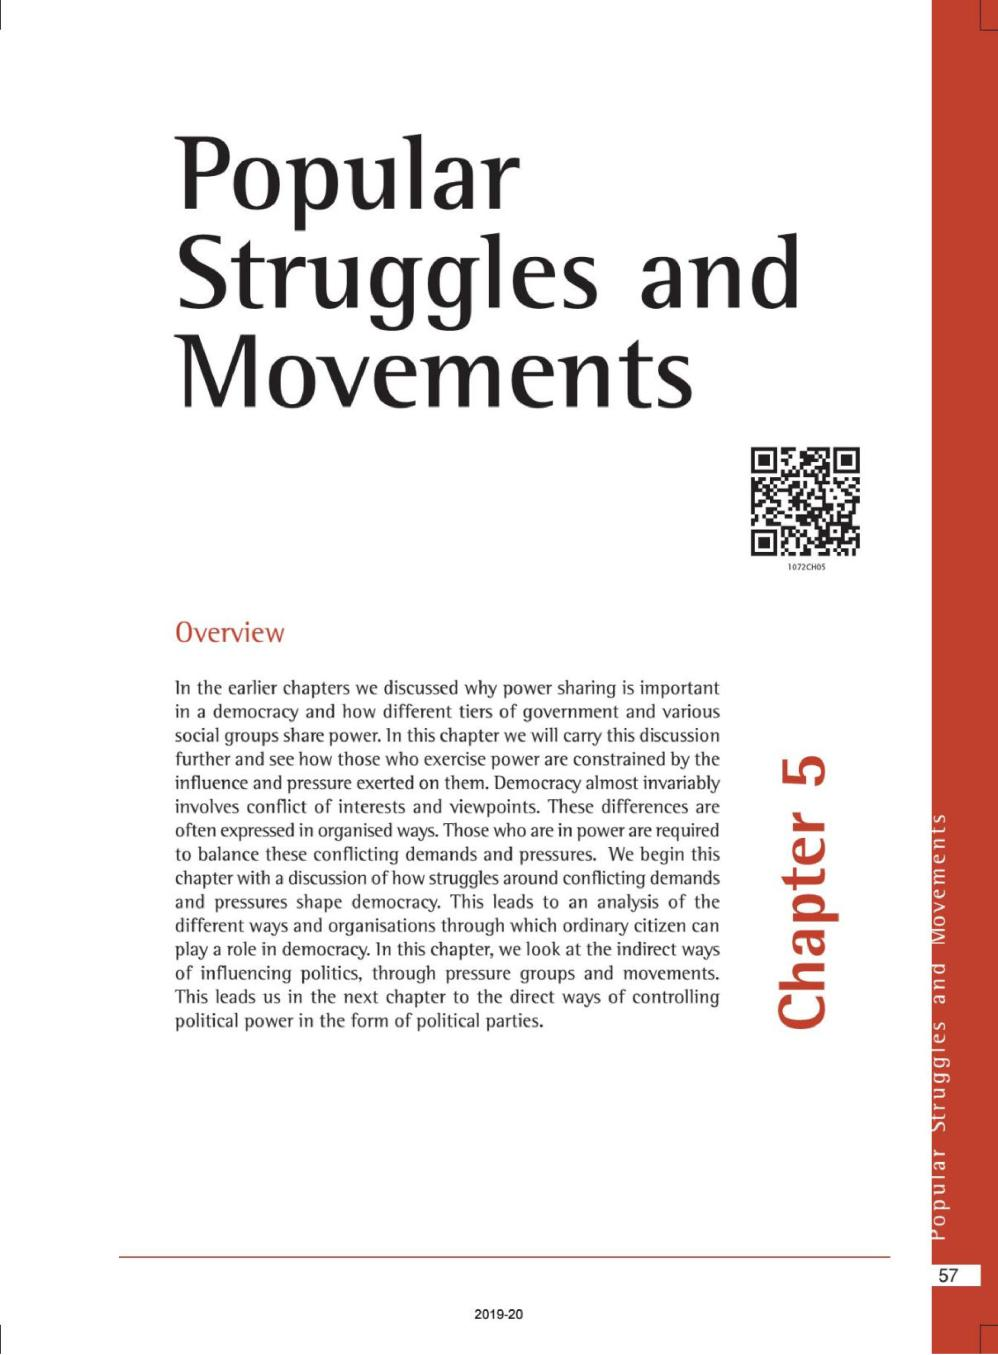 NCERT Book Class 10 Social Science (Civics) Chapter 5 Popular Struggles and Movements - Page 1